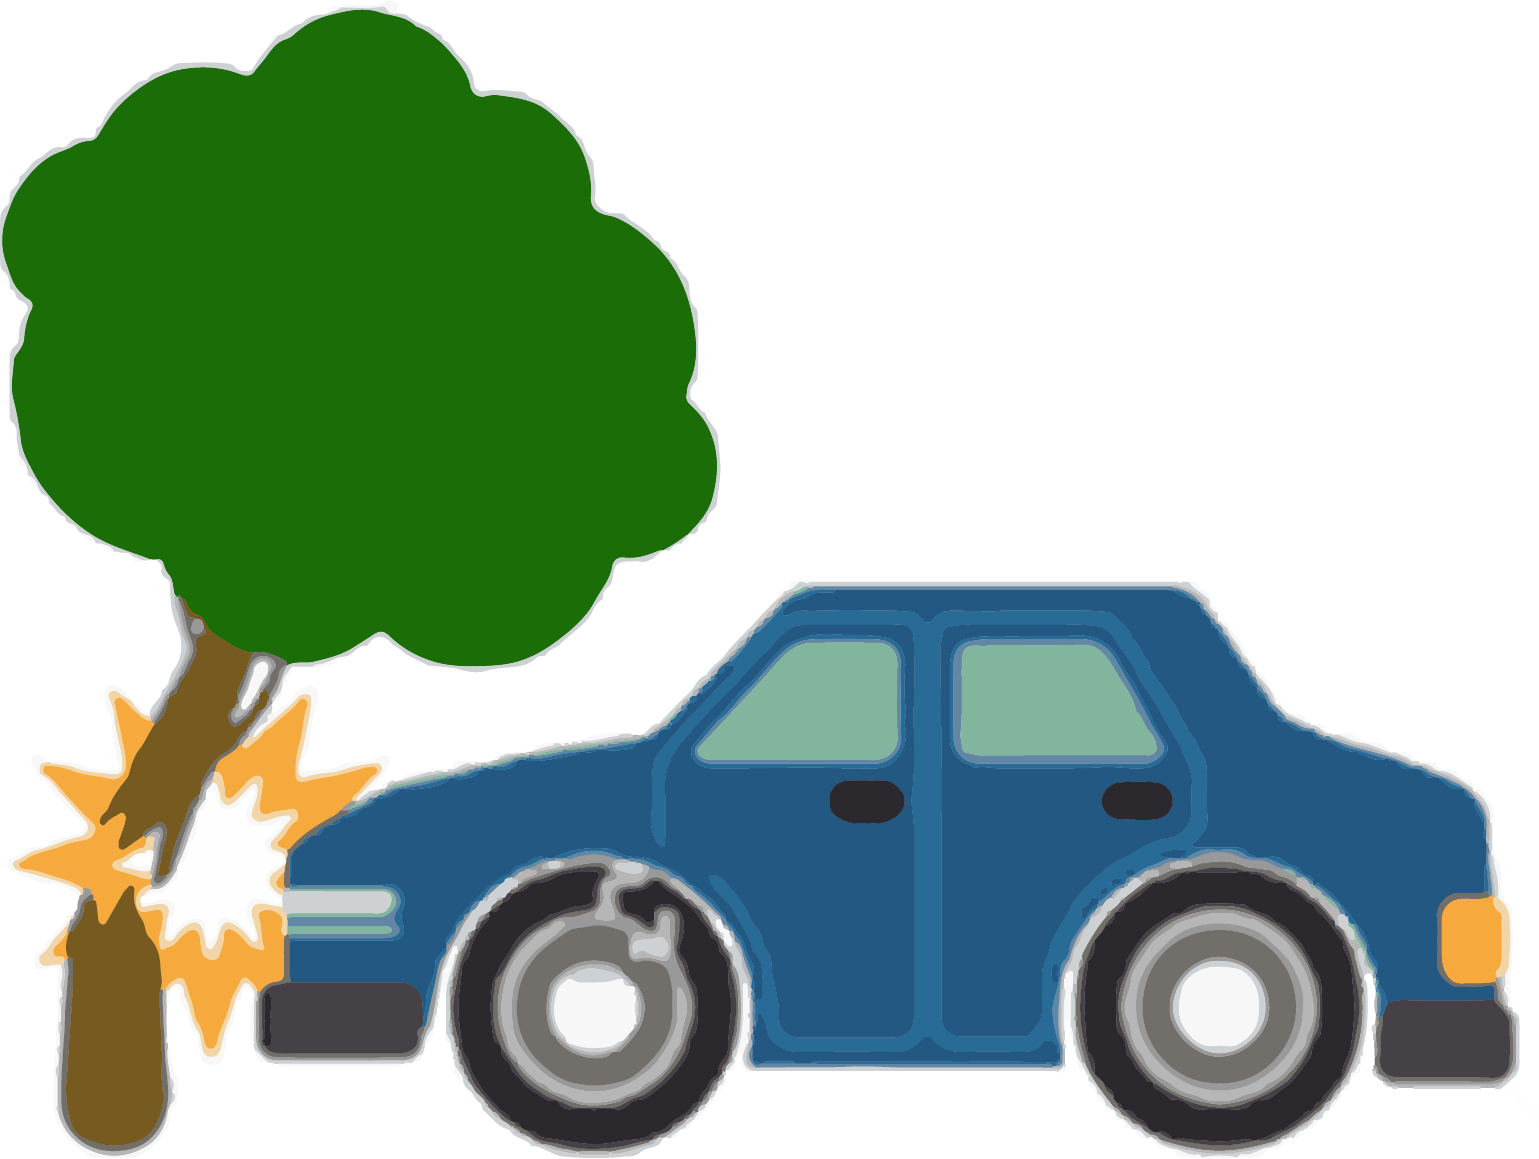 Cartoon car wreck clipart freeuse download Cartoon Traffic collision Accident - Car accident scene 1539*1159 ... freeuse download